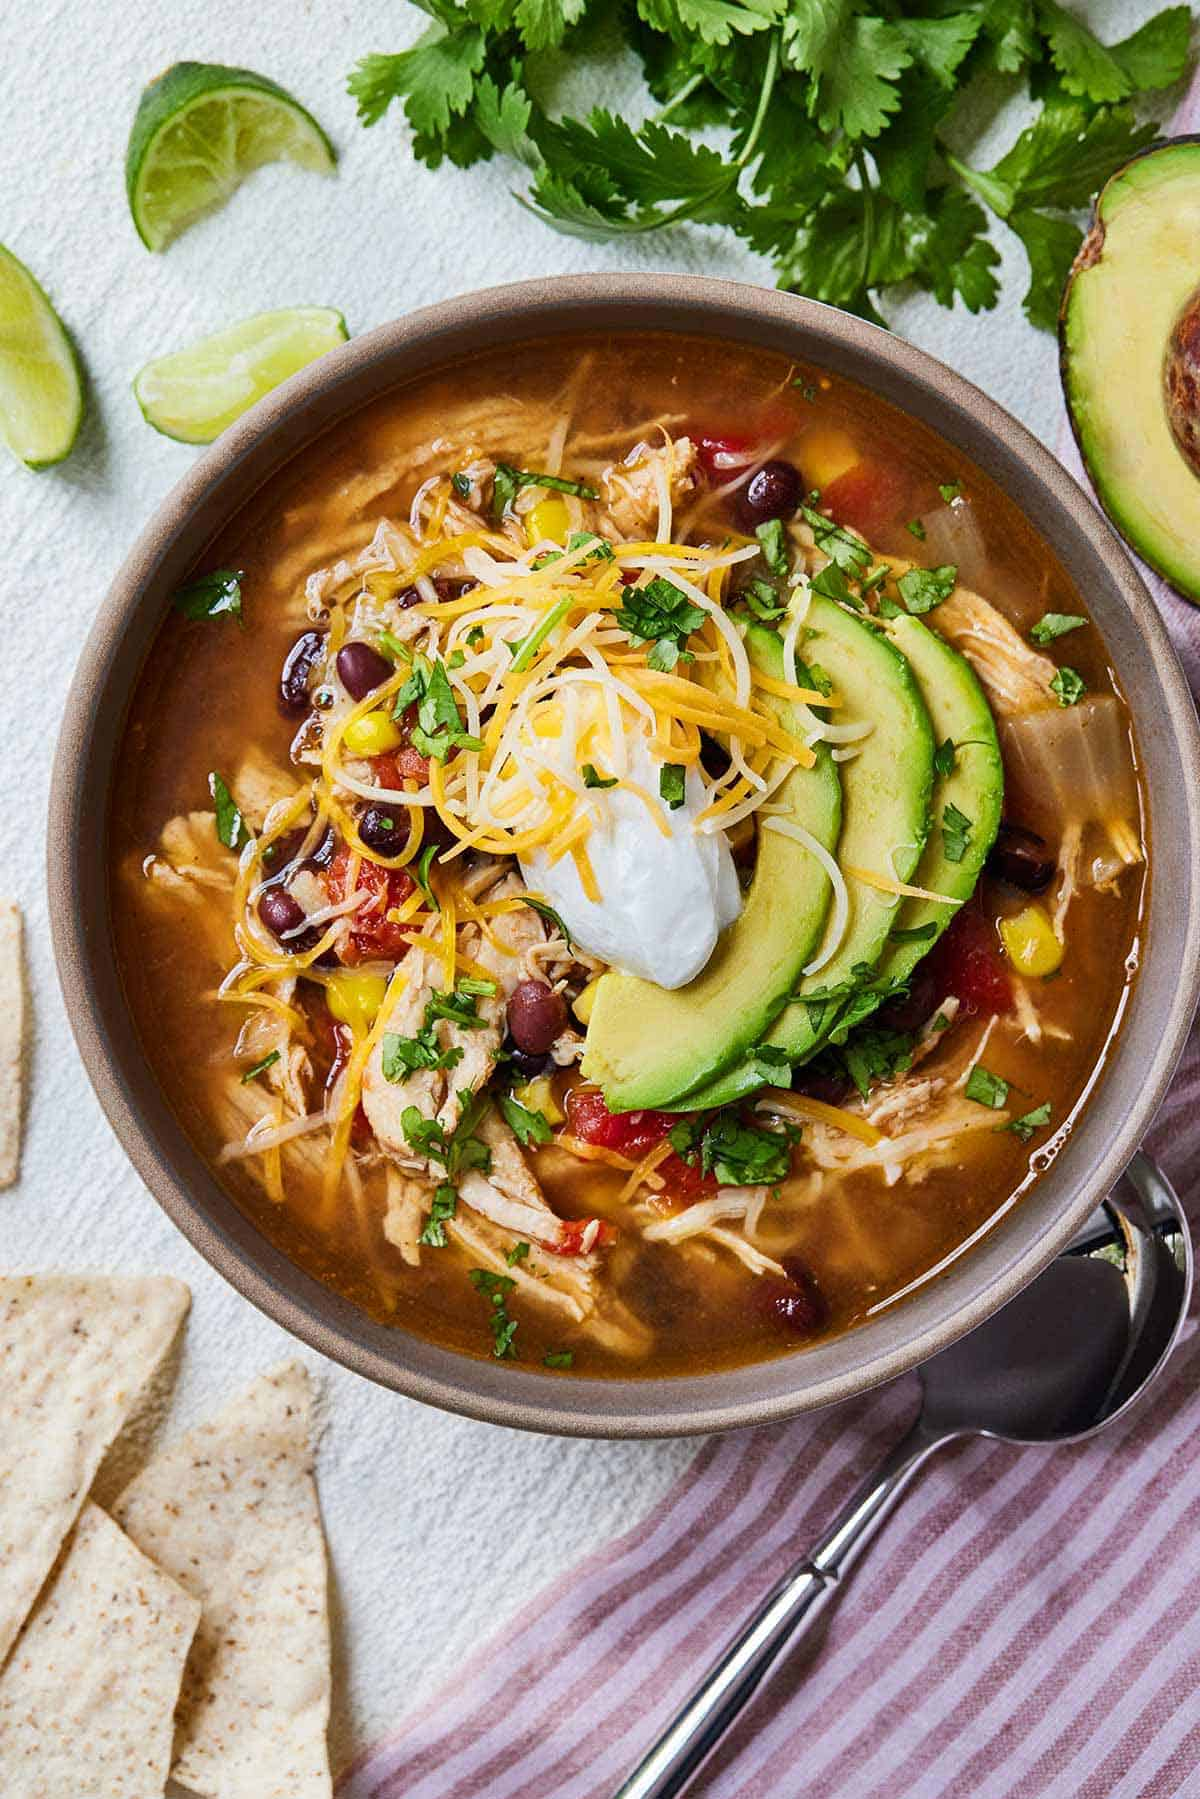 Overhead view of a bowl of Instant Pot chicken tortilla soup topped with shredded cheese, sour cream, and avocado and chips, limes, and cilantro on the table.